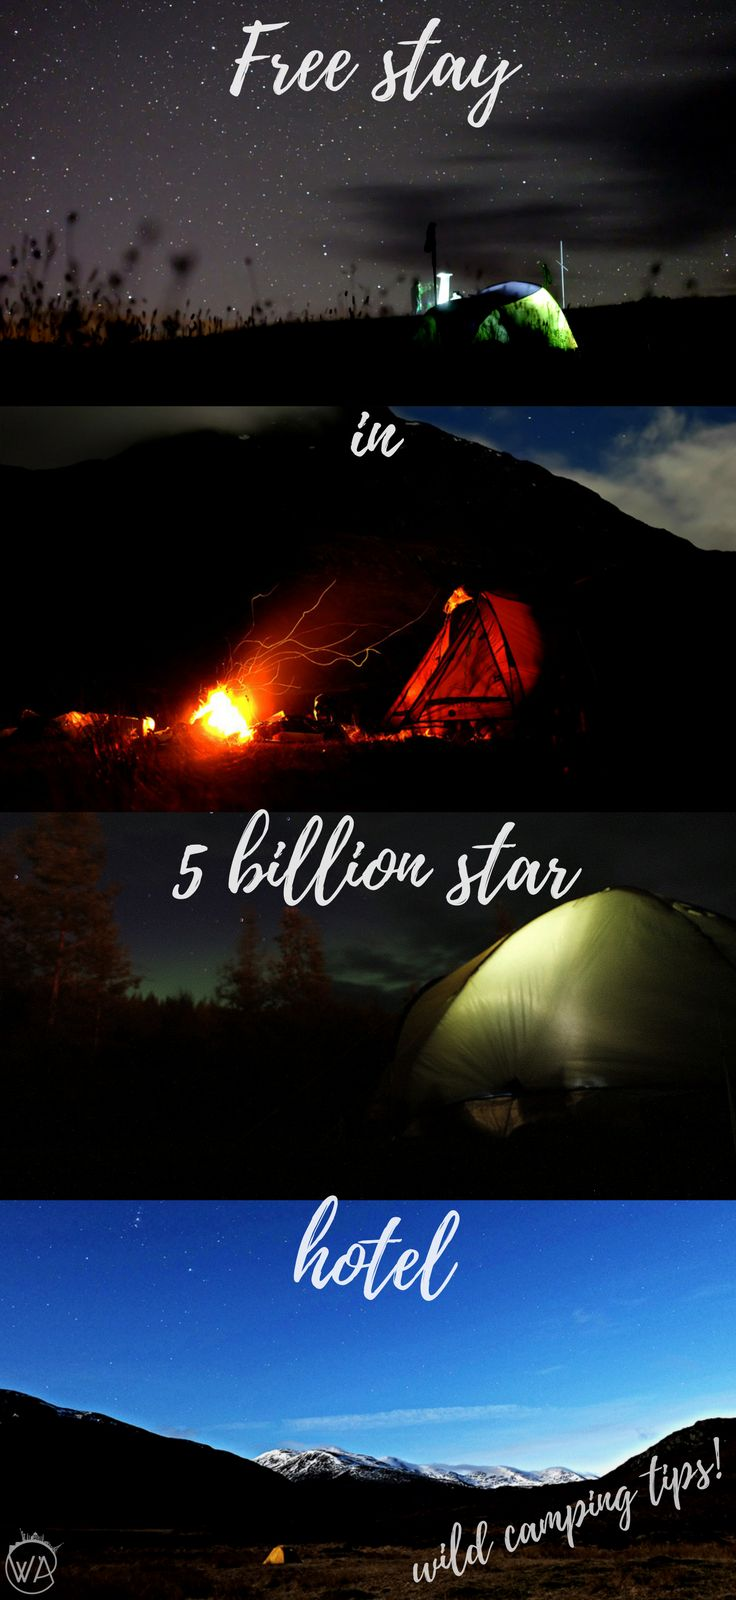 How to comfortably stay in 5 billion star hotel? Learn those wild camping tips to help you camp with amazing views. | Worldering around Travel for free, cheap travel, budget travel, camping, wild camping, nature, stay with a view, best places to camp, camping gear, wild camping guide, what to take camping, where to camp, how to prepare for camping, wild camping Scotland, camping in Europe, camping Iceland, Iceland on the budget, travel on a budget